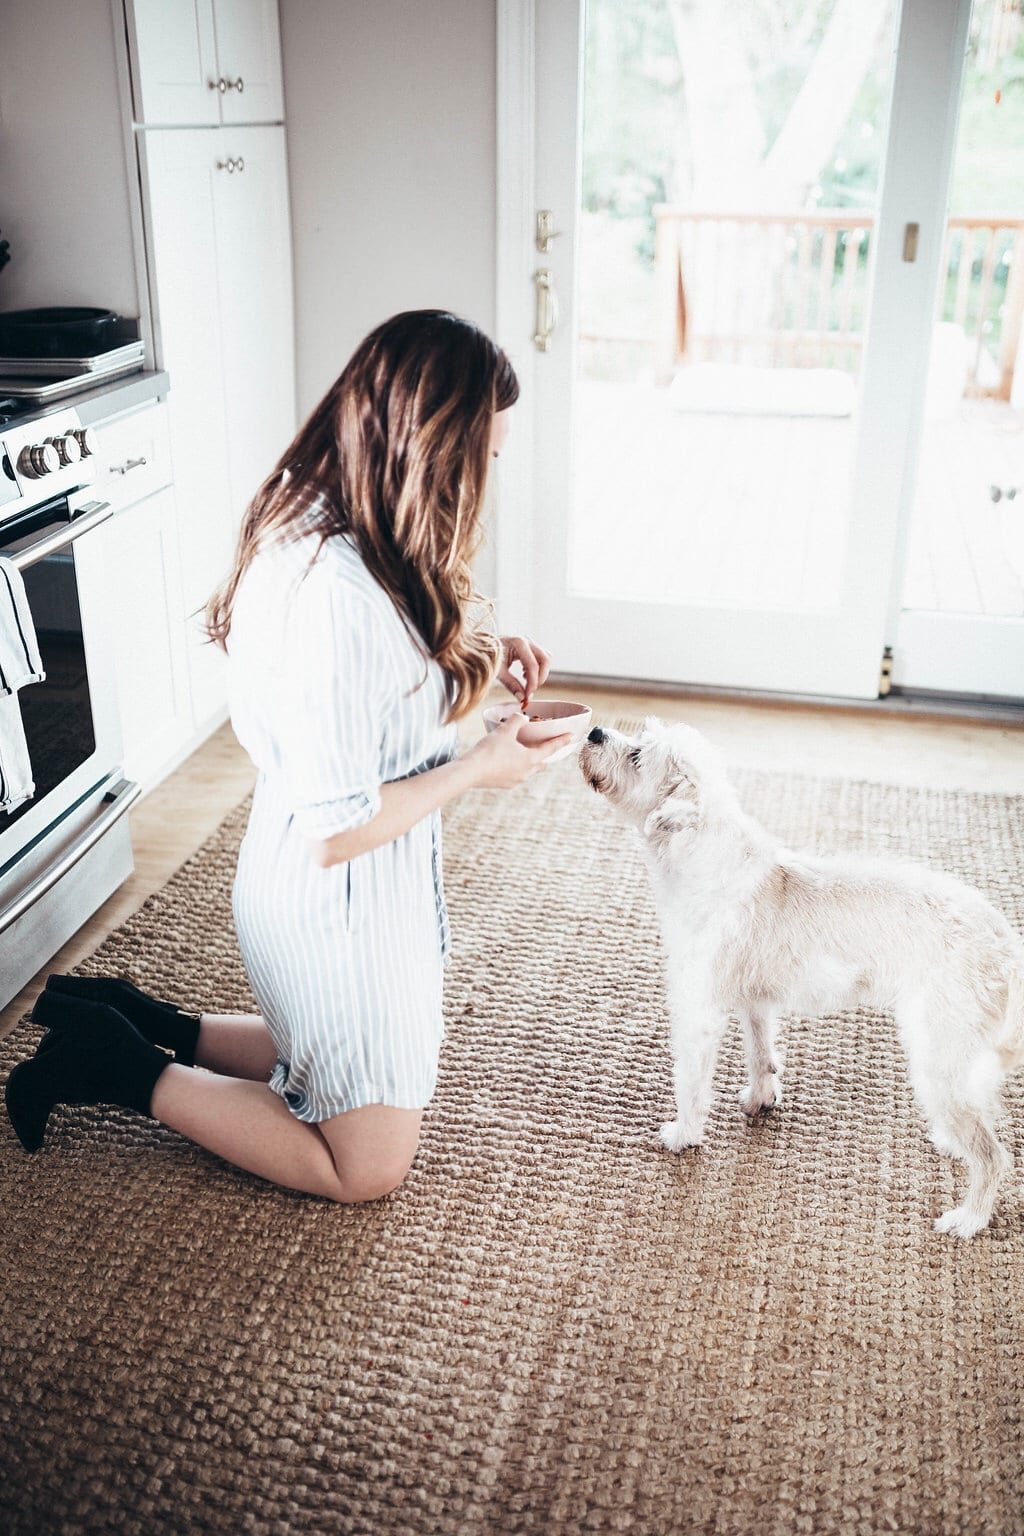 Freshpet - LOLA'S ADOPTION STORY AND HER FAVORITE FOOD: FRESHPET by popular San Francisco lifestyle blogger, Just Add Glam